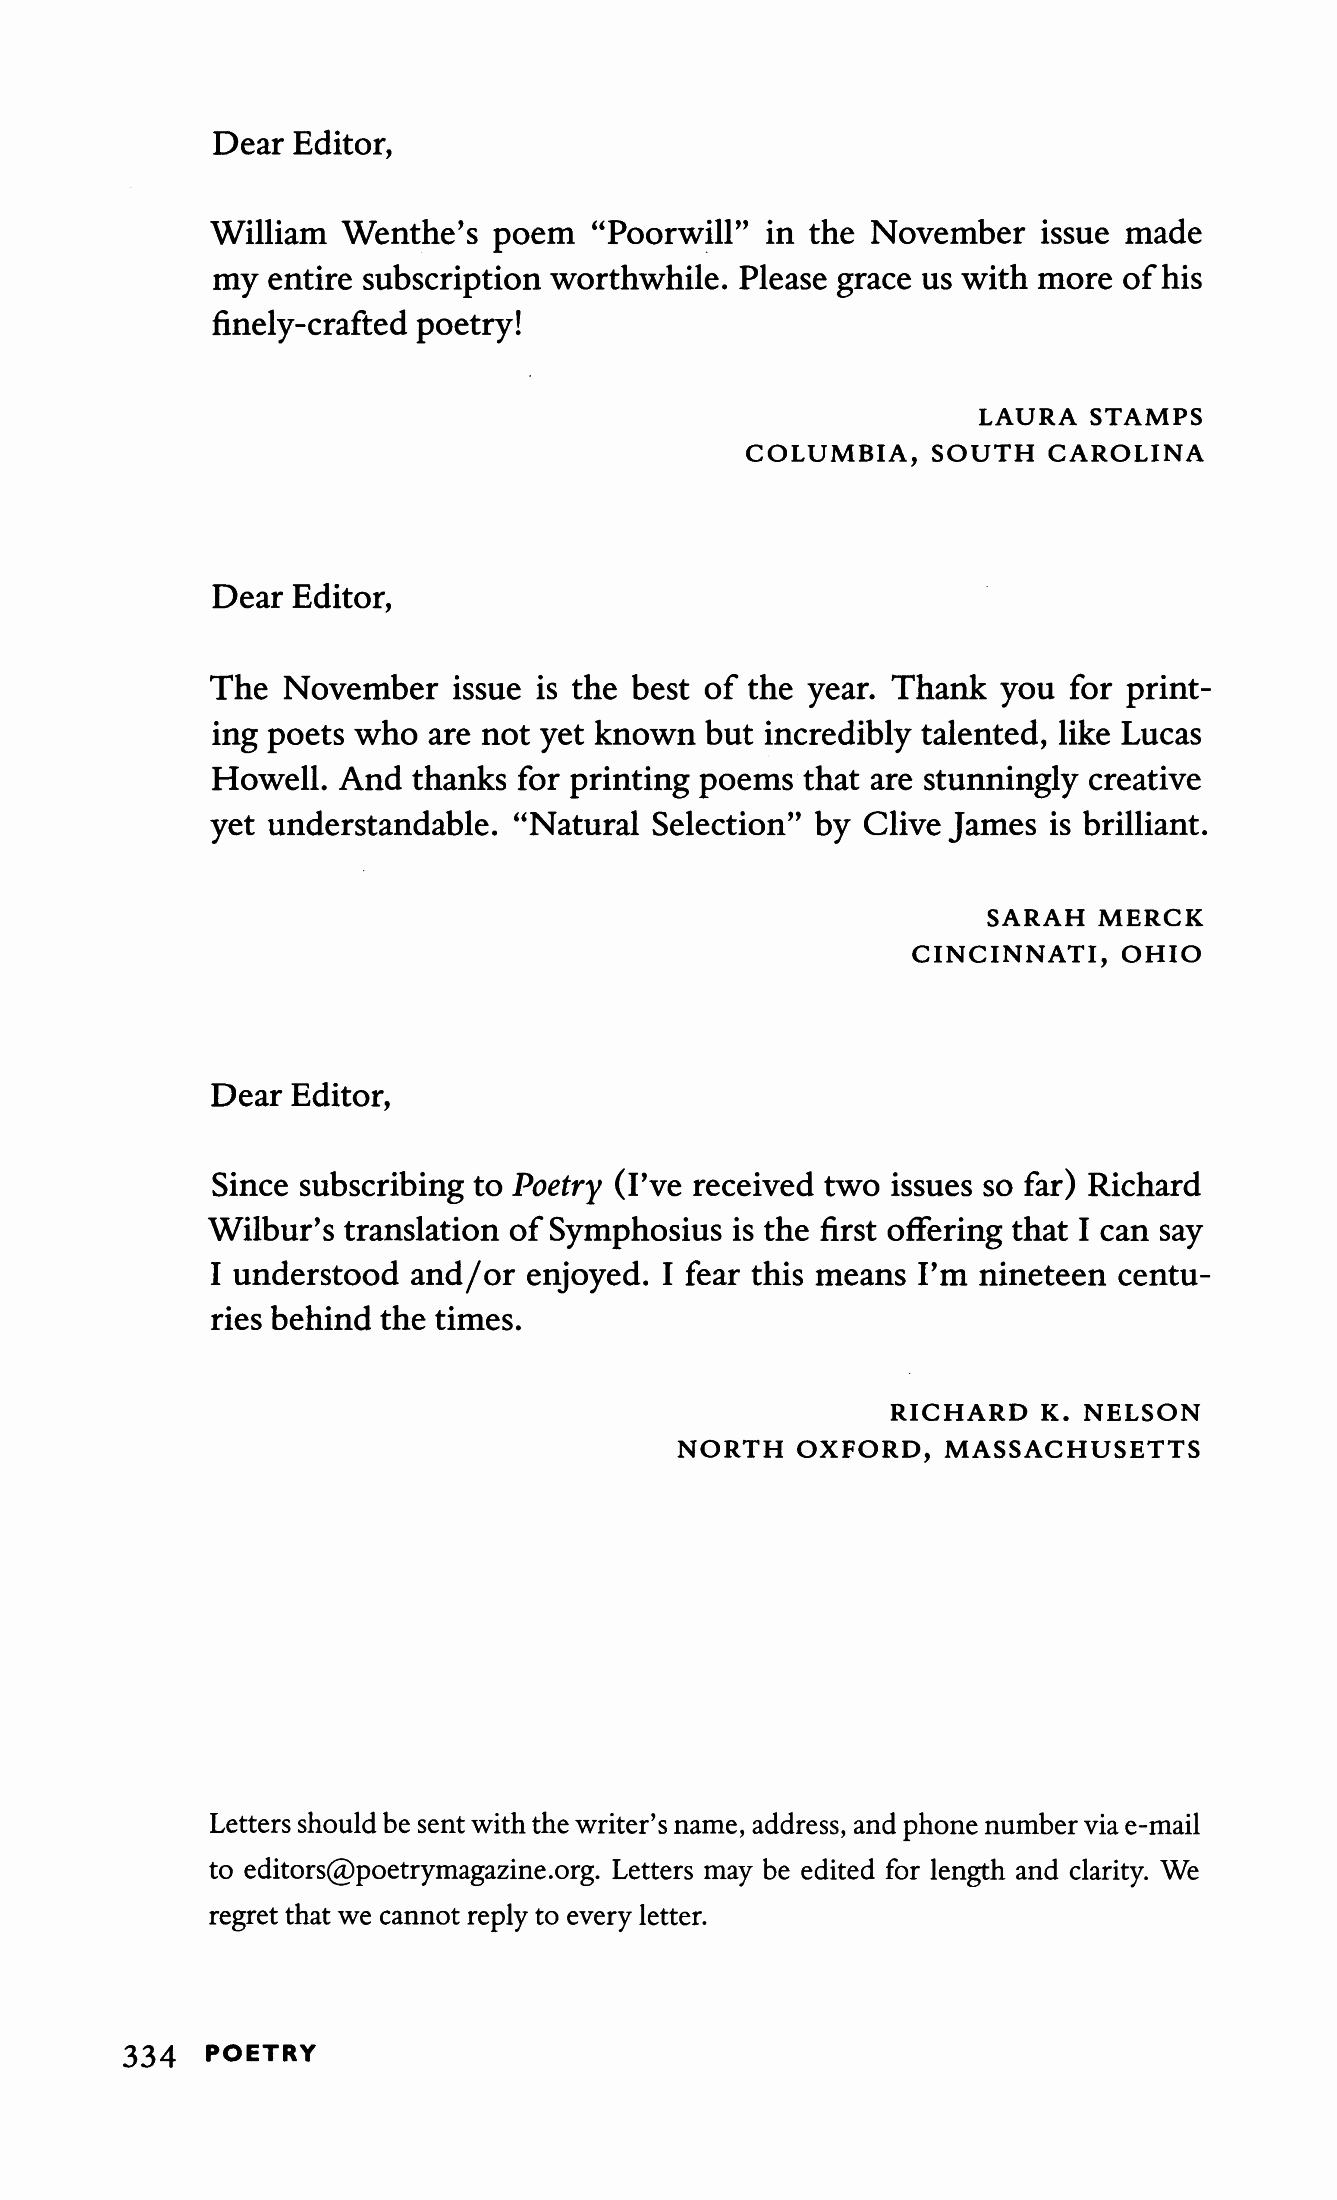 Letter to Editors format Awesome Letter to the Editor Example for Students Class 9